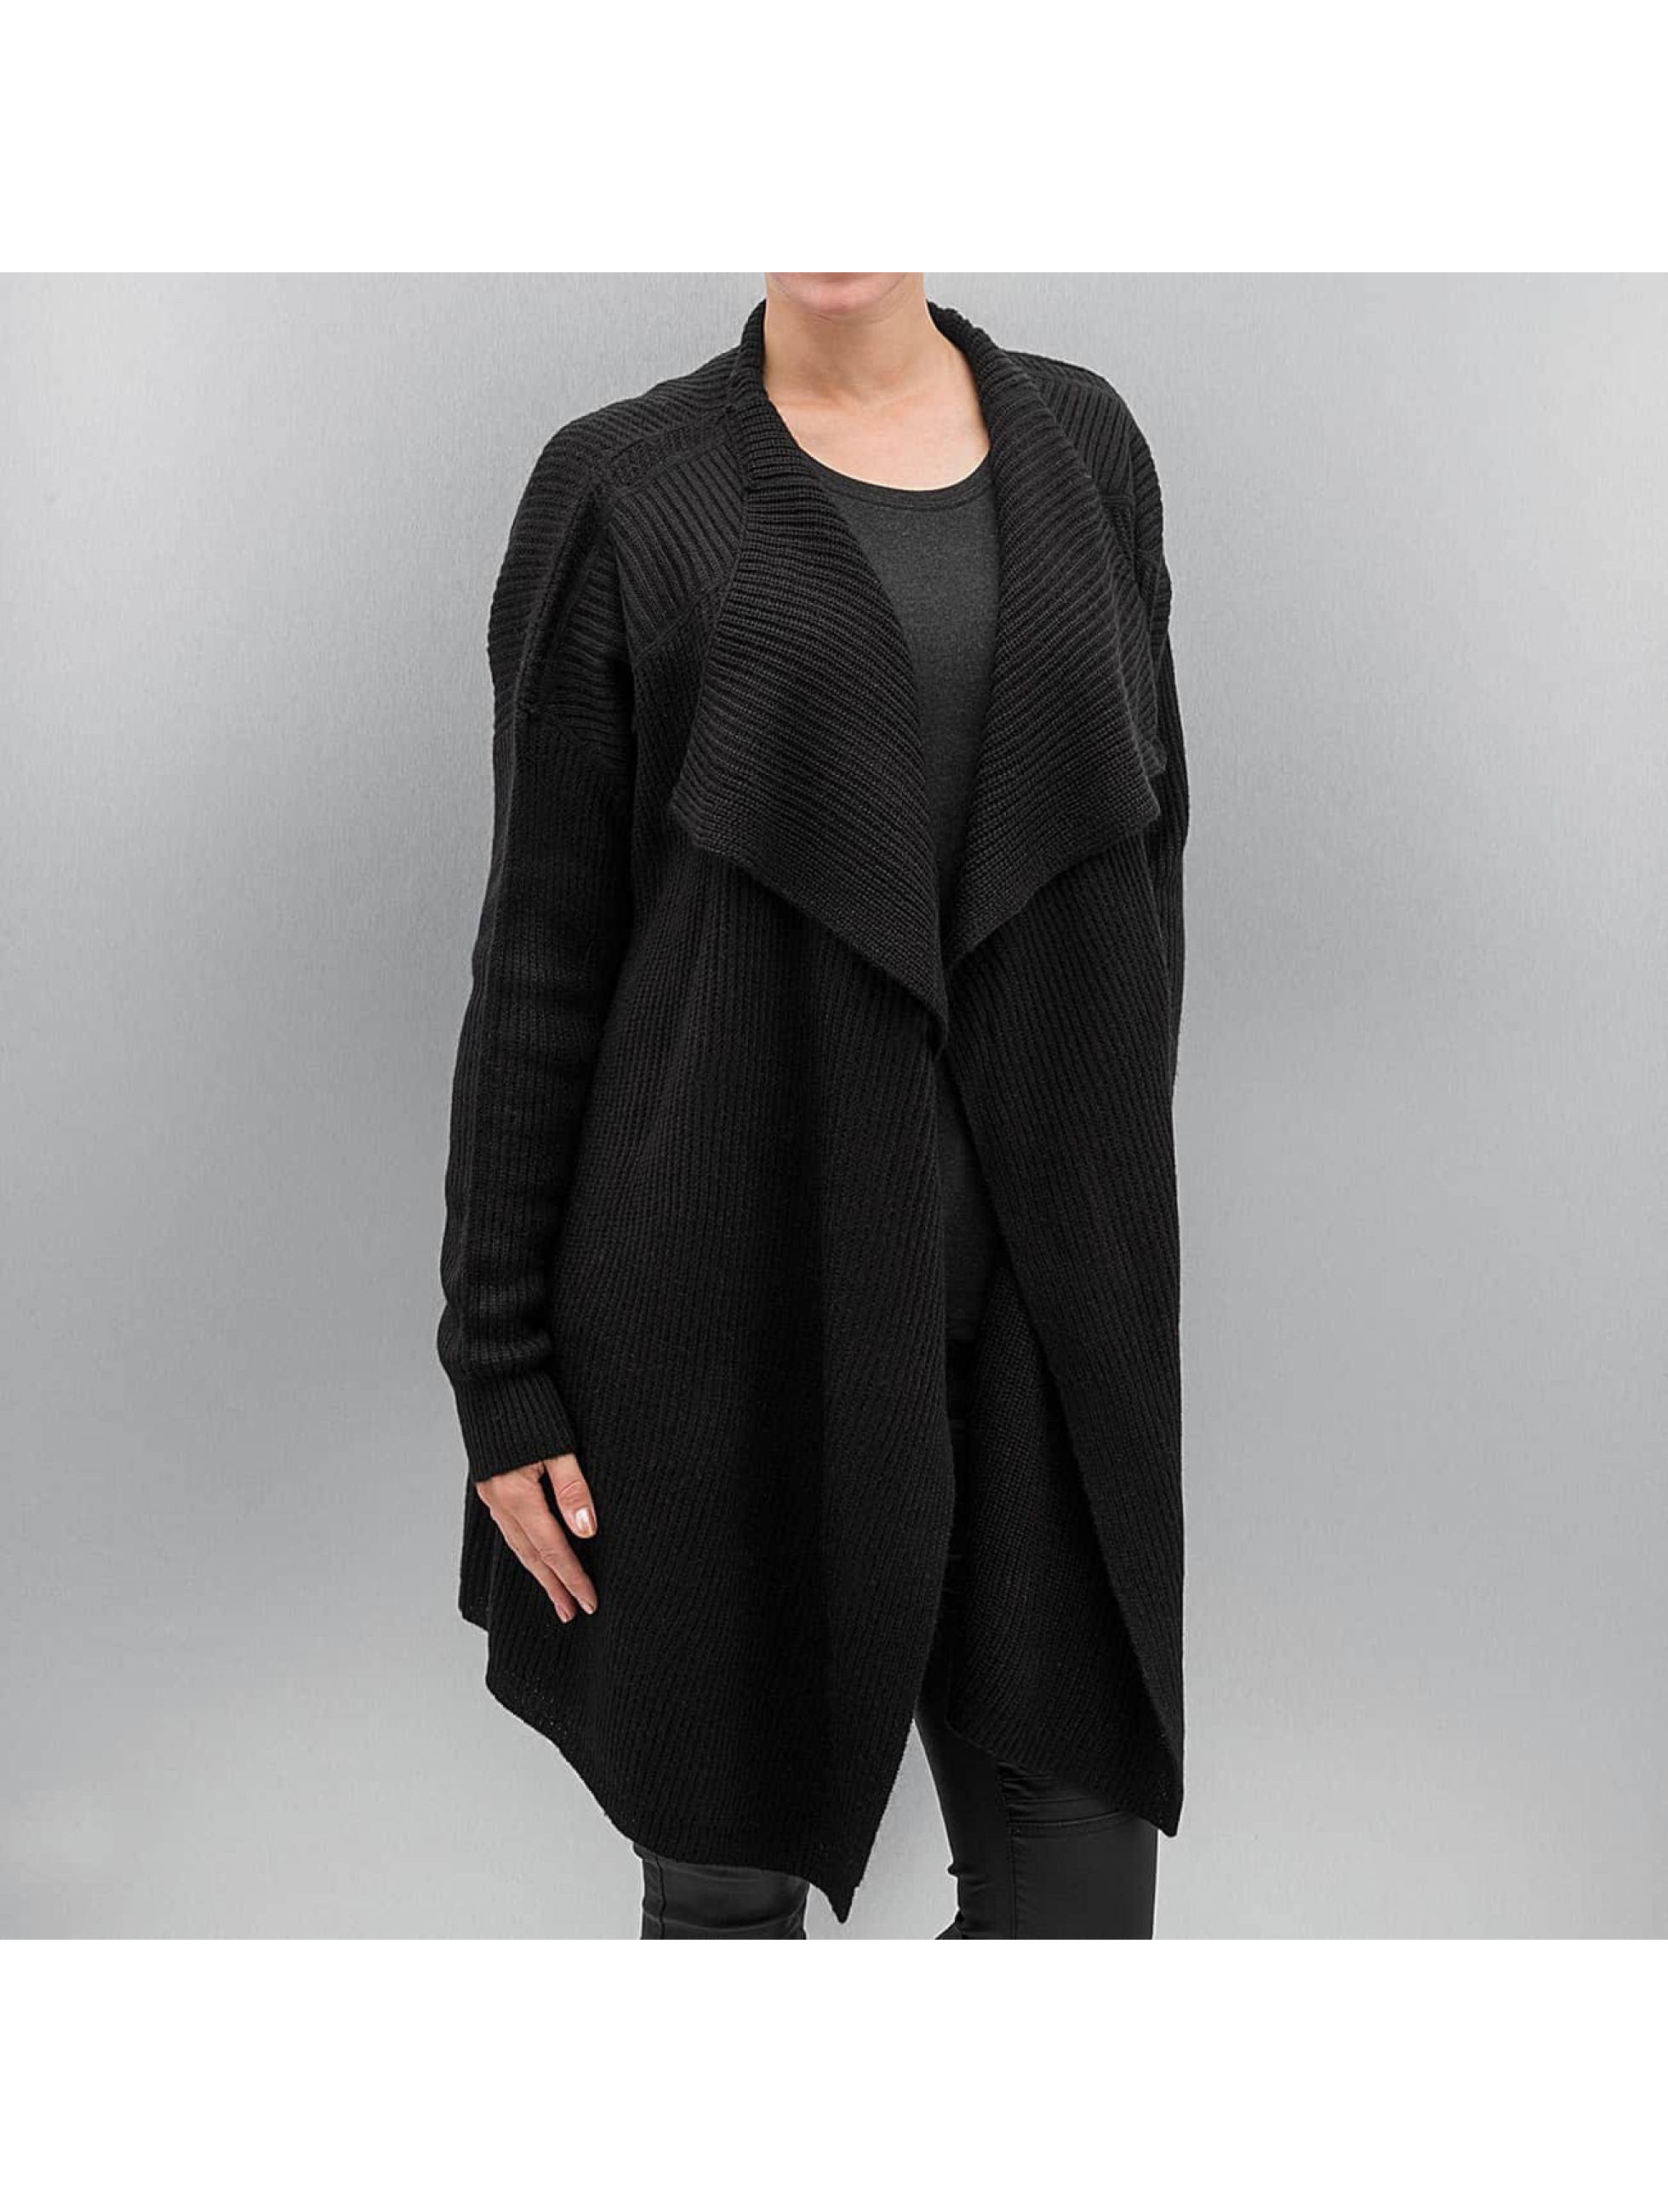 Strickjacke nmShake in schwarz